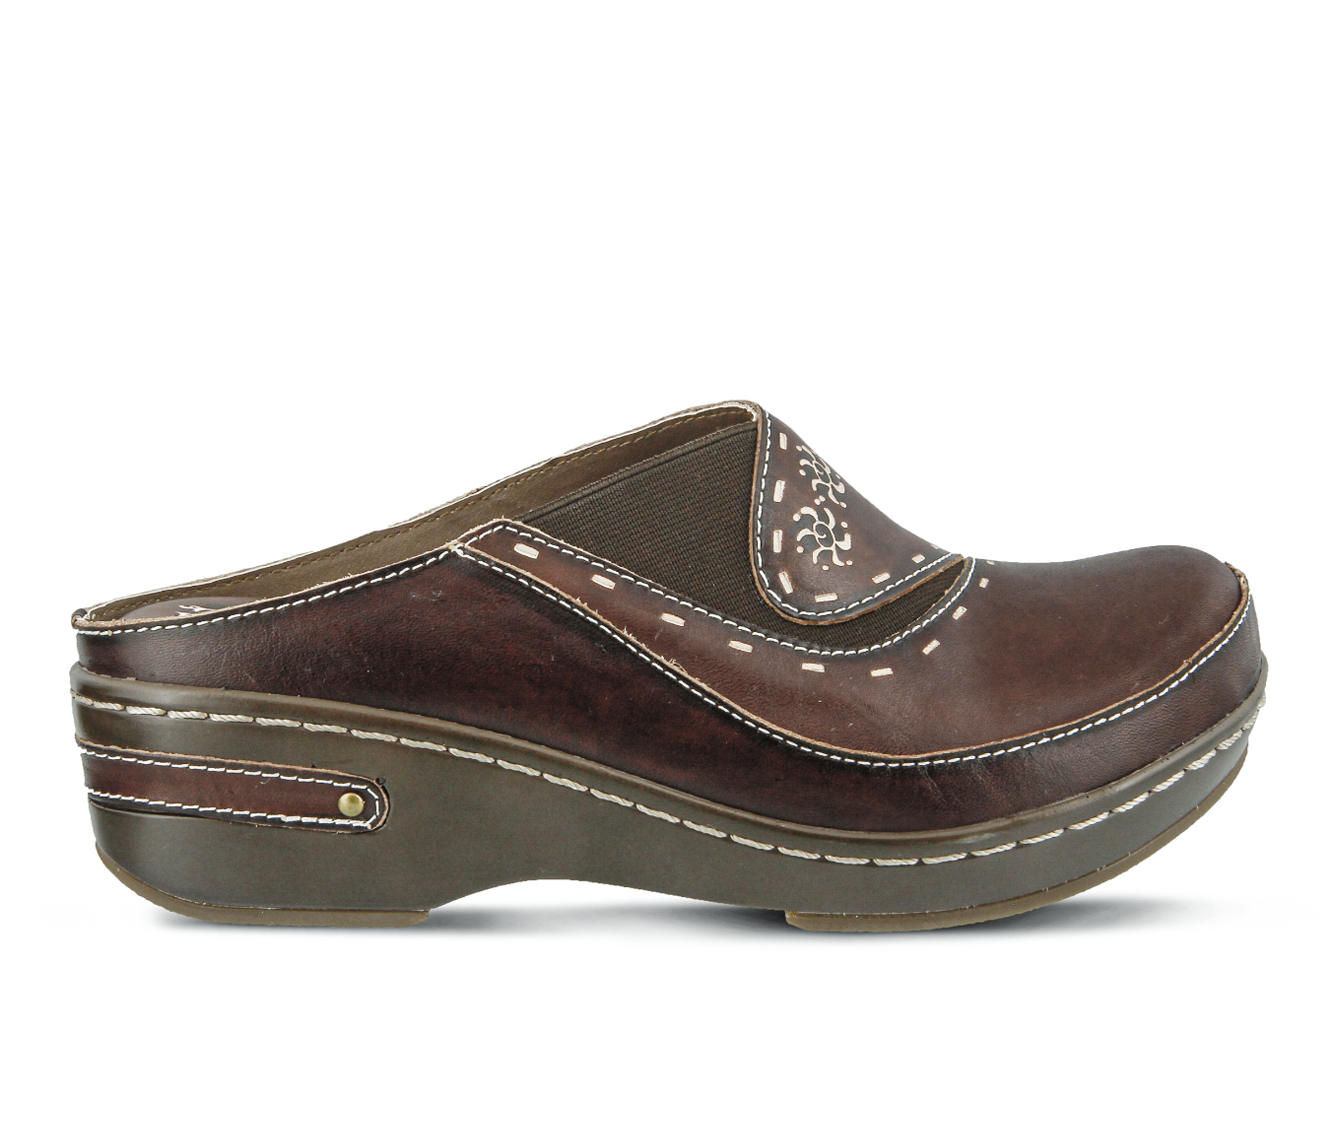 L'Artiste Chino Women's Shoe (Brown Leather)